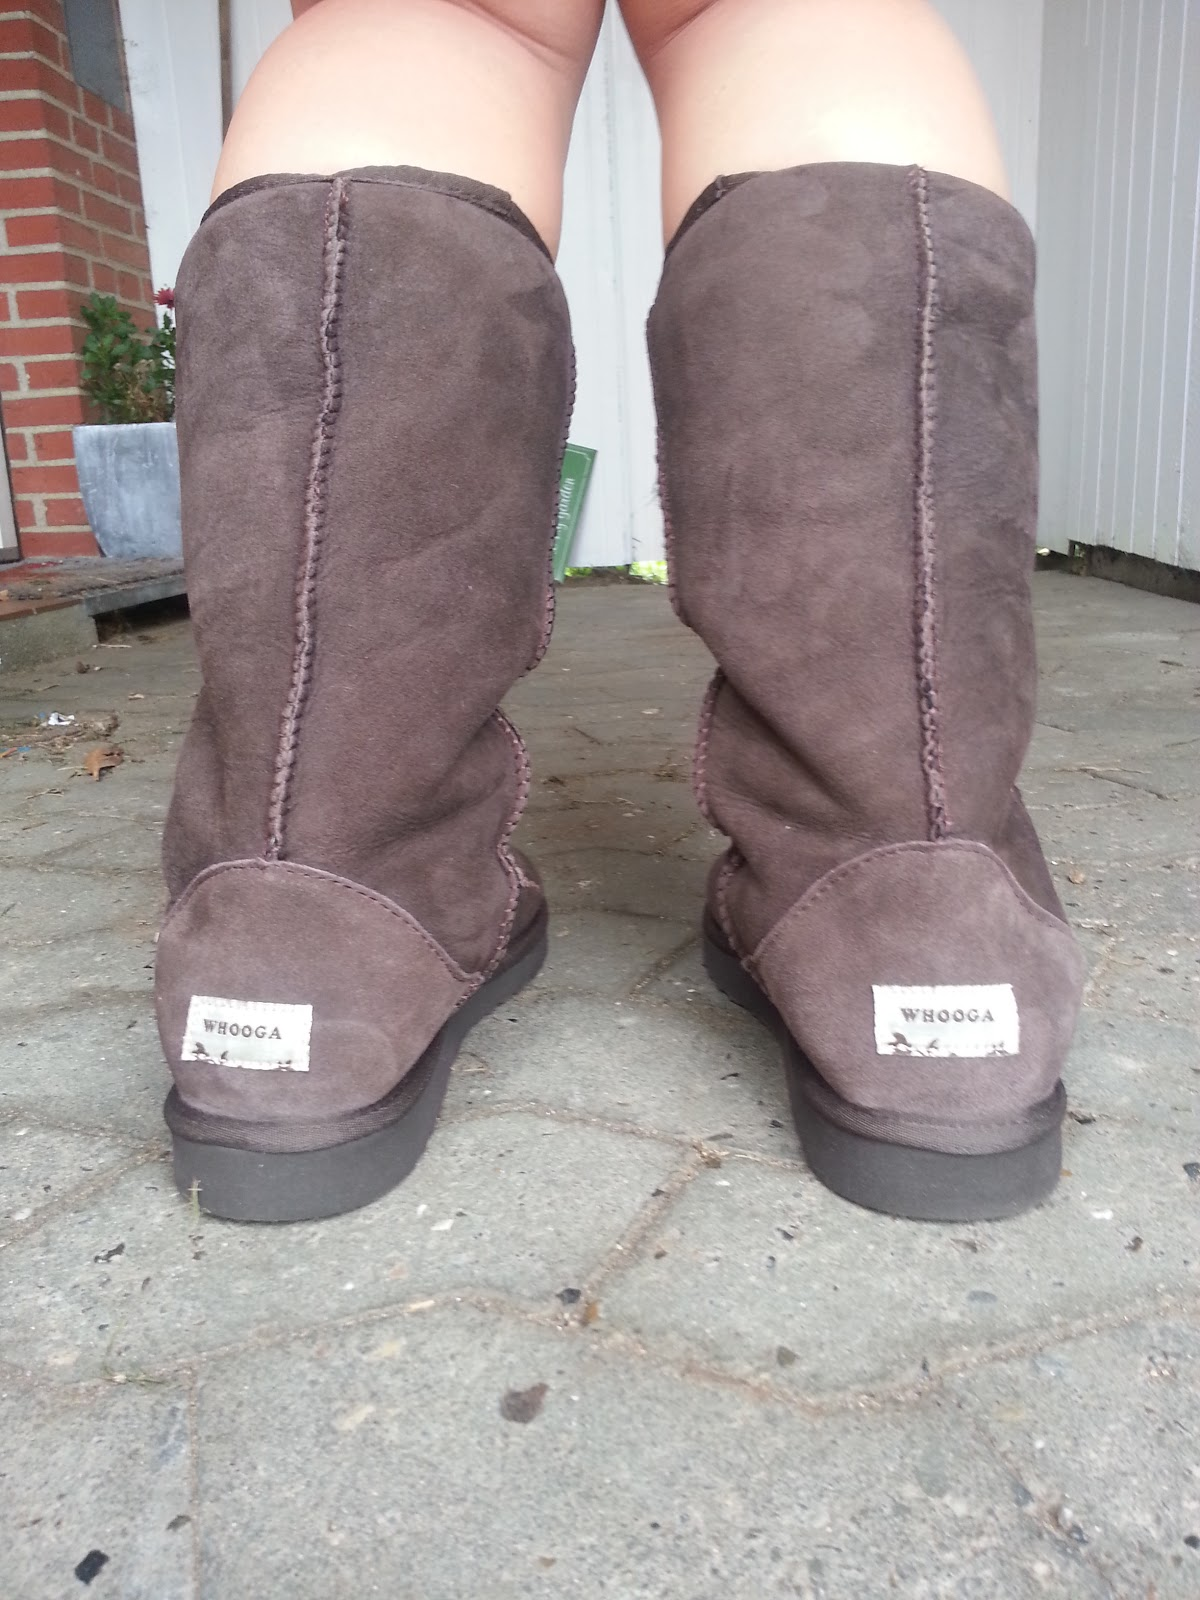 0d4b7e9af53 BeingMaja: My new Whooga UGG boots have arrived!:-D yay!